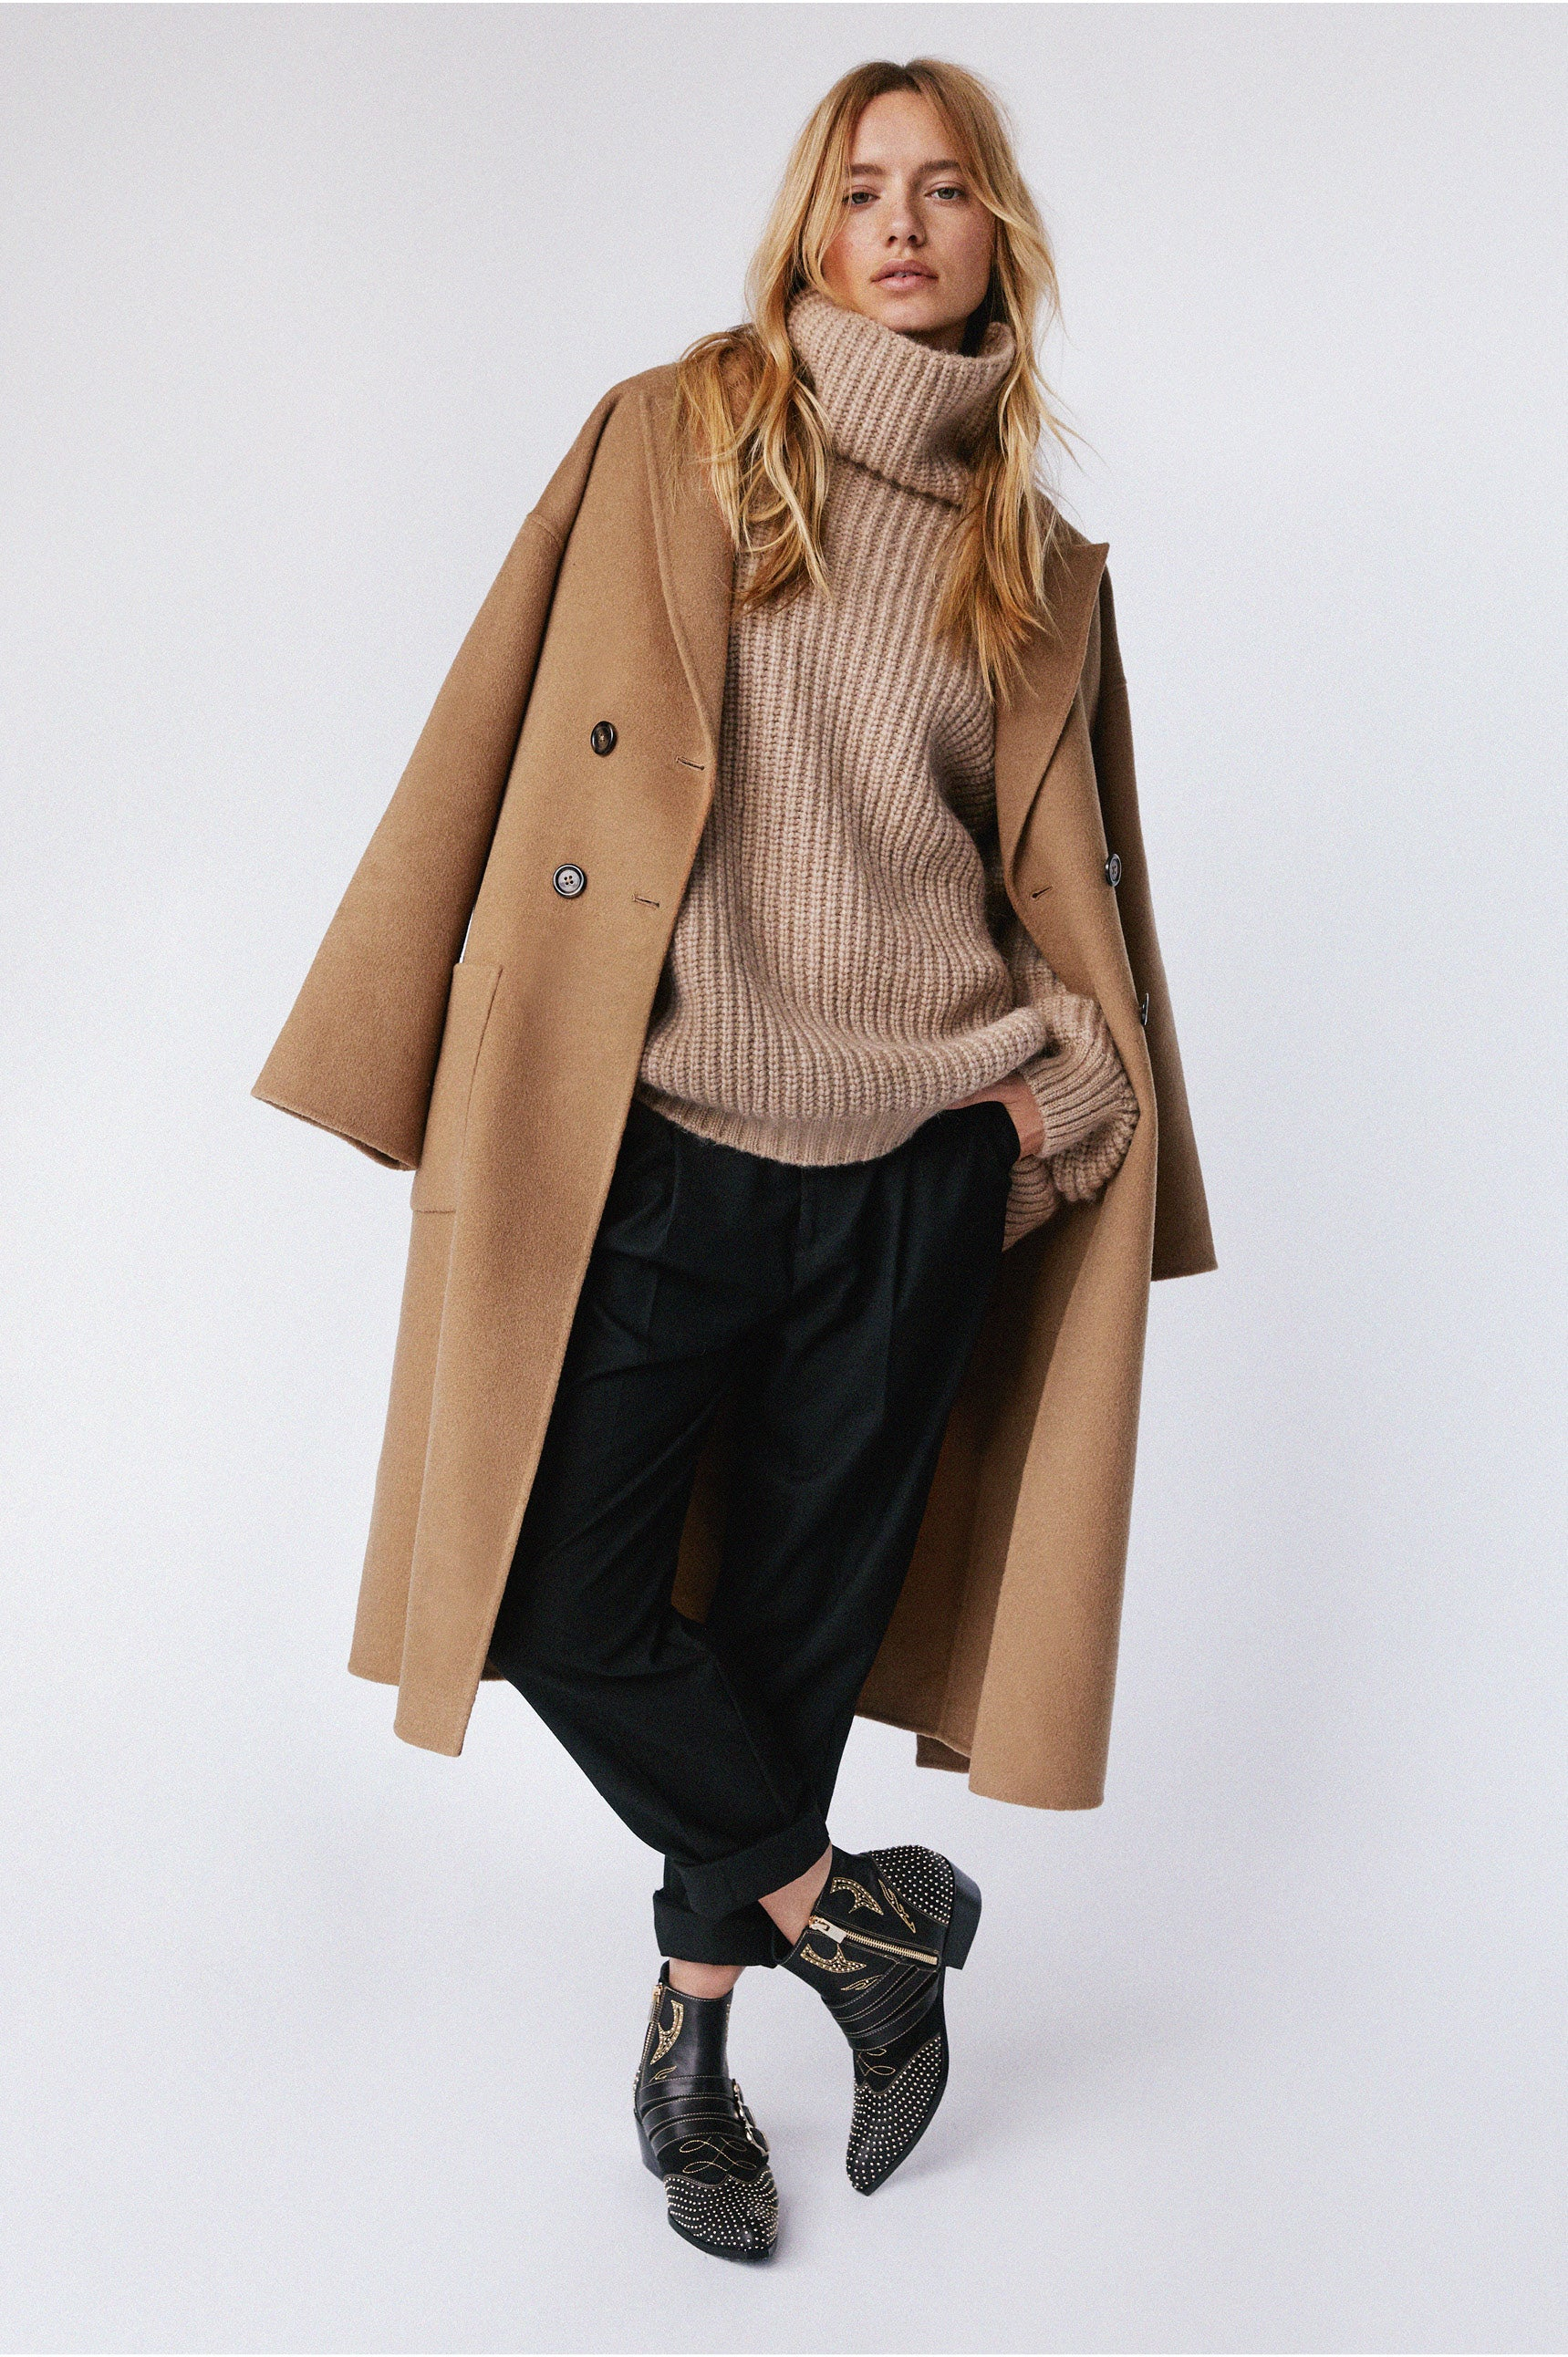 "<p><a href=""/products/dylan-coat-camel"" title=""Dylan Coat - Camel"">DYLAN COAT</a> 